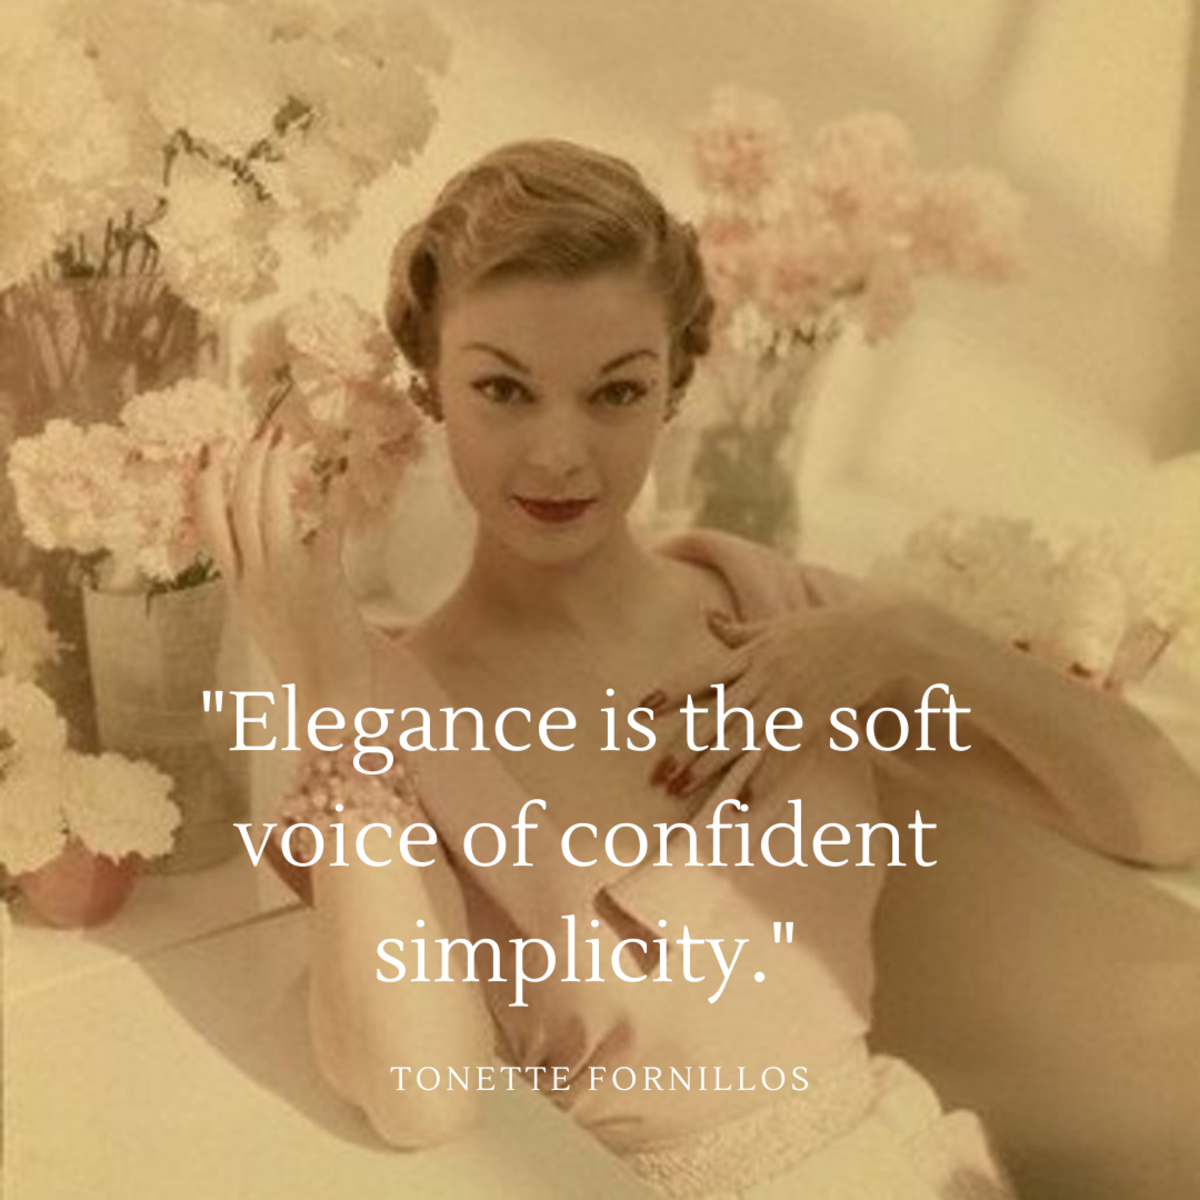 What Is Elegance to the Woman of Today